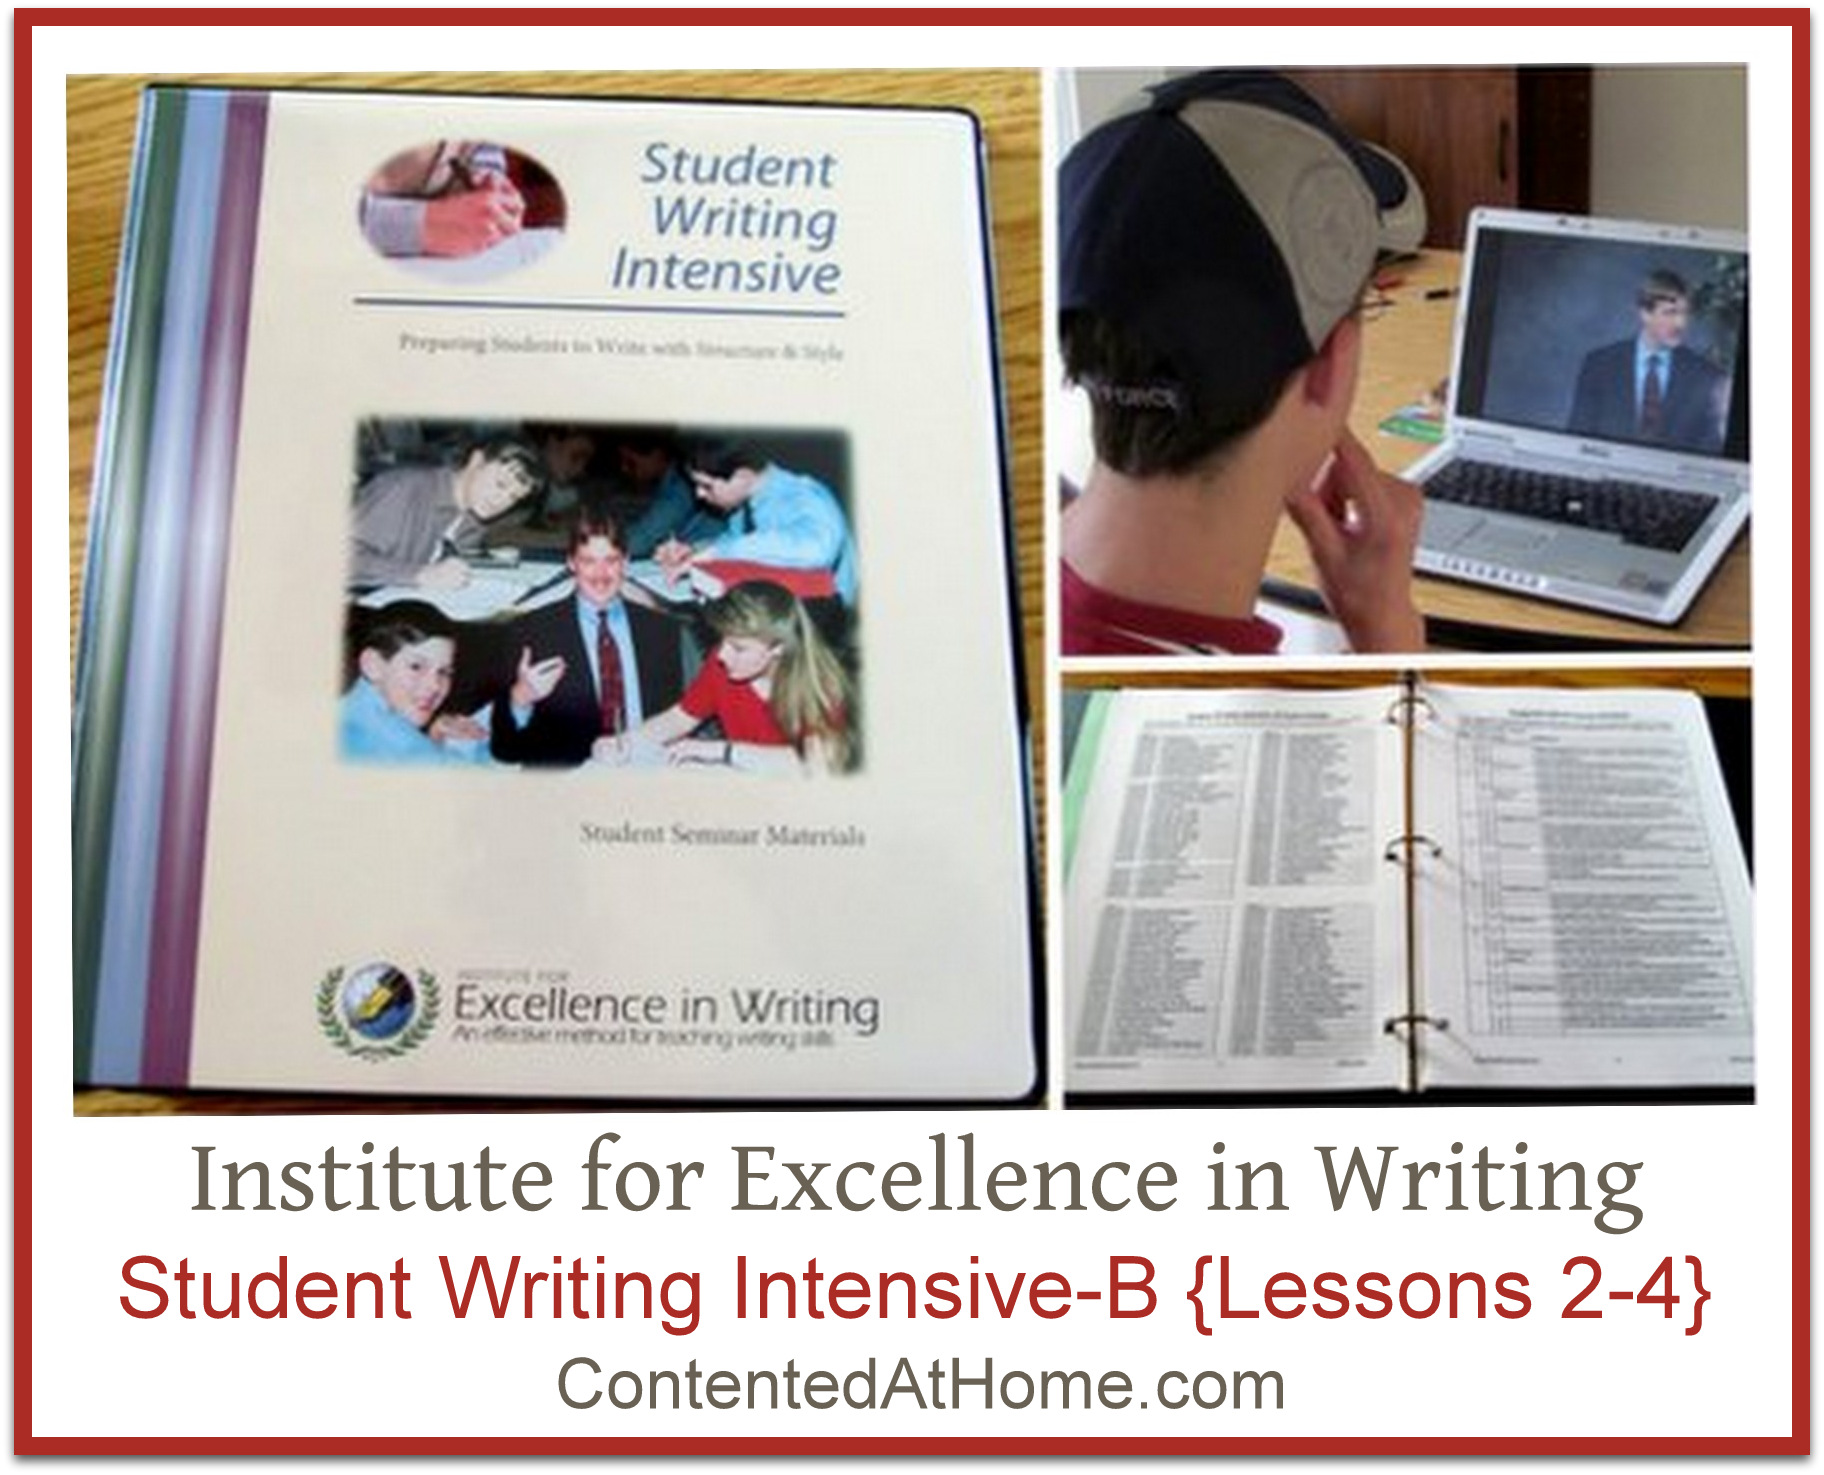 institute of excellence in writing Welcome to excellence in writing if you are looking for a way to excite your students about writing, you have come to the right place our mission is to equip.